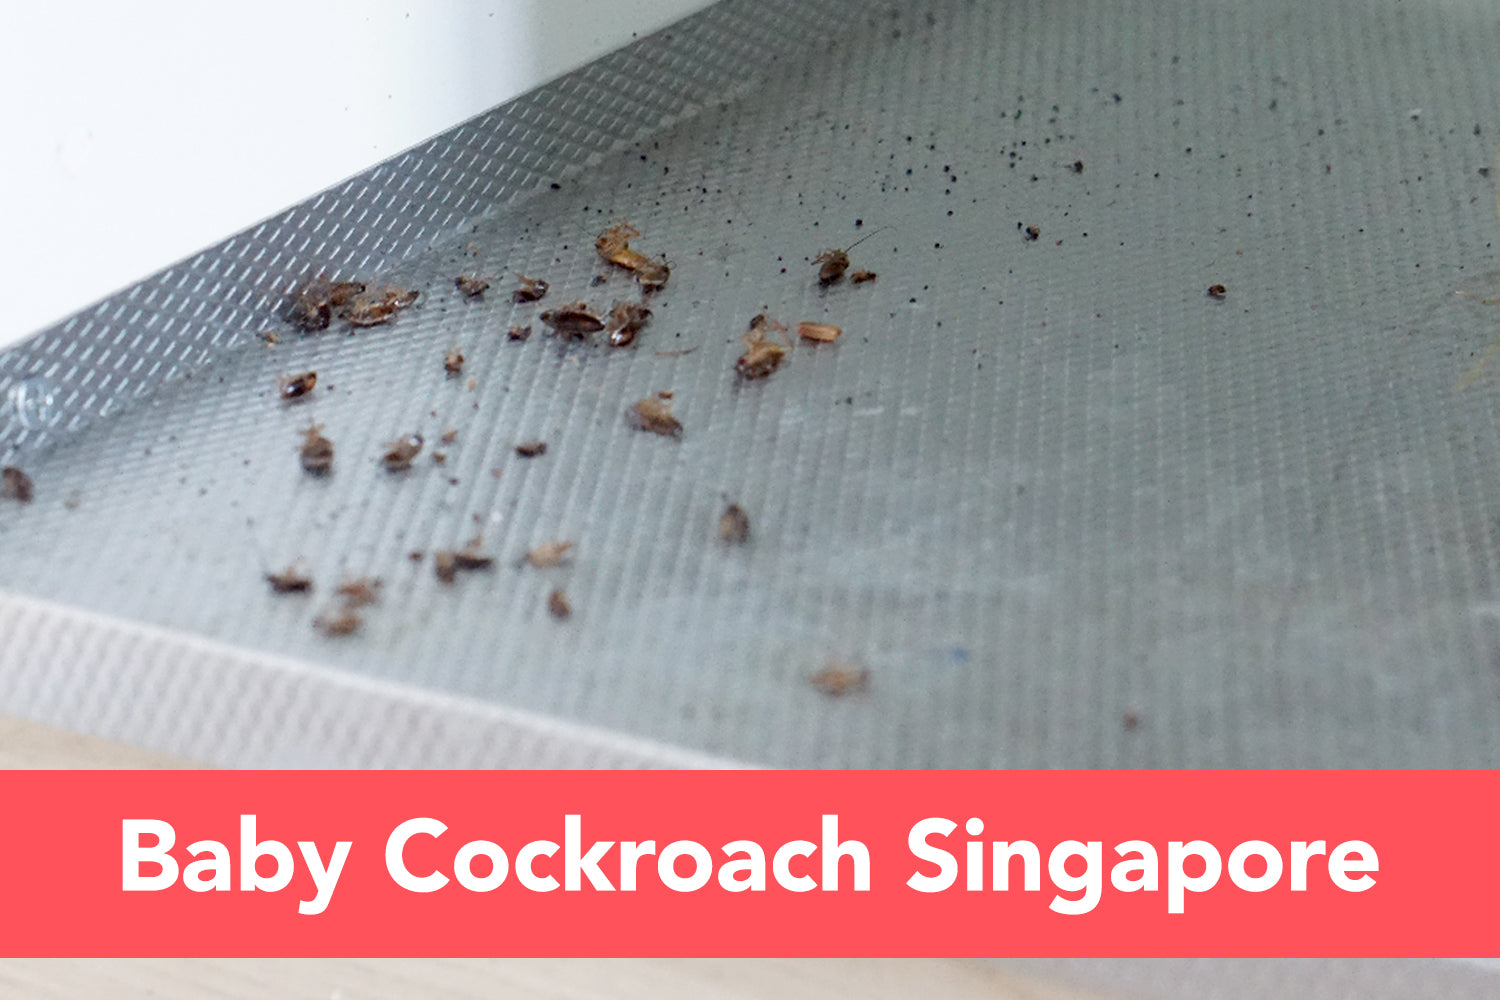 Baby Cockroach Singapore